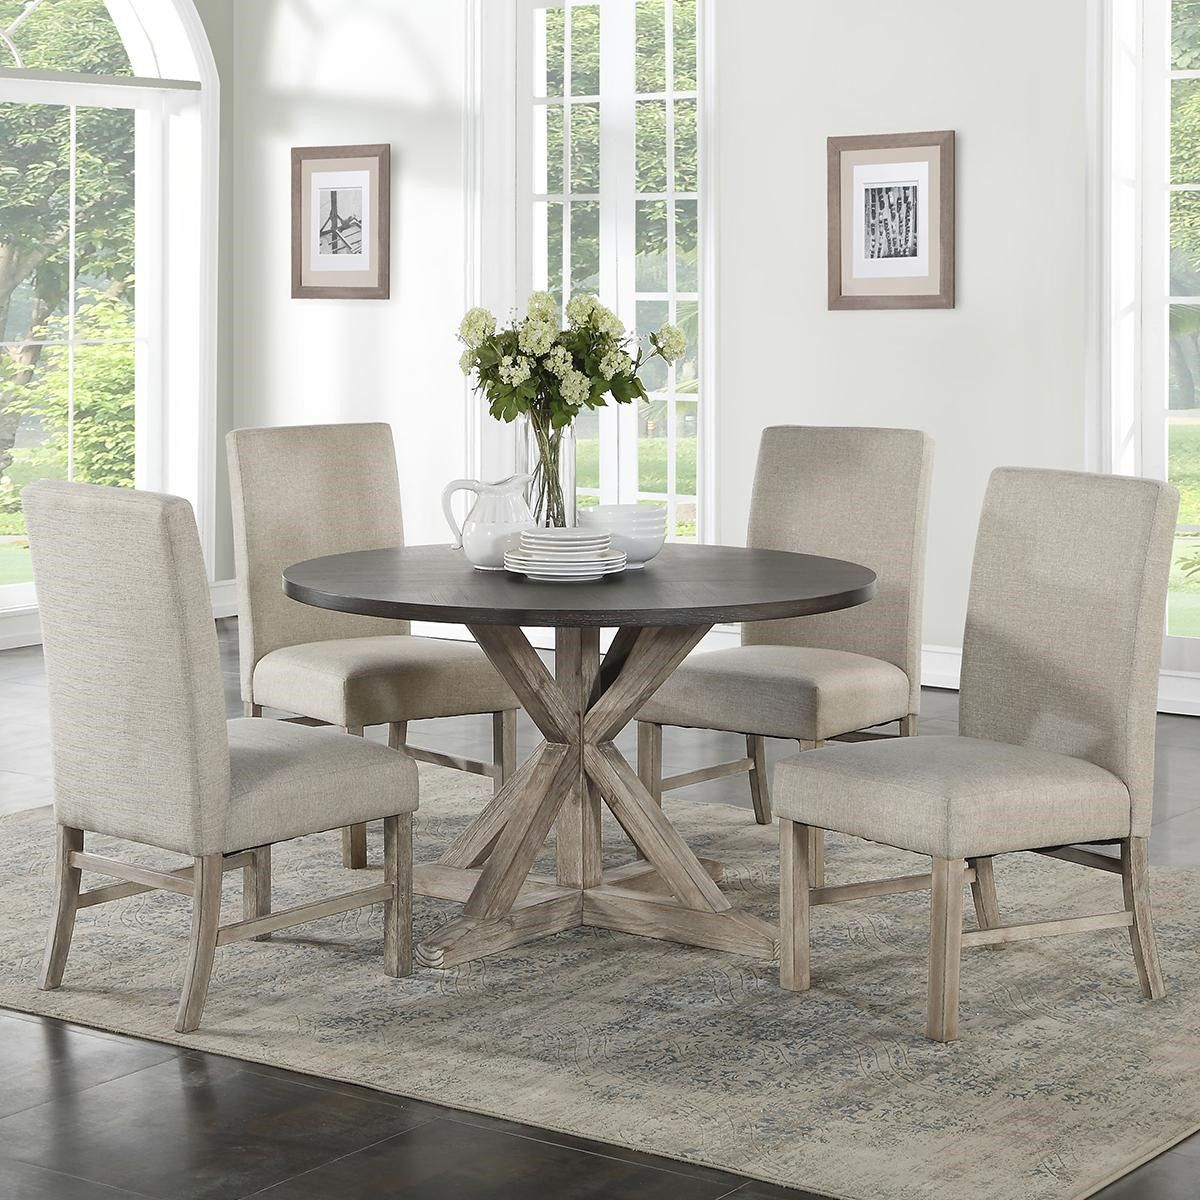 Inspiration about Well Liked Travon 5 Piece Dining Sets Throughout Langley Furniture Jefferson 5 Piece Dining Set In Reclaimed Pine And (#6 of 20)